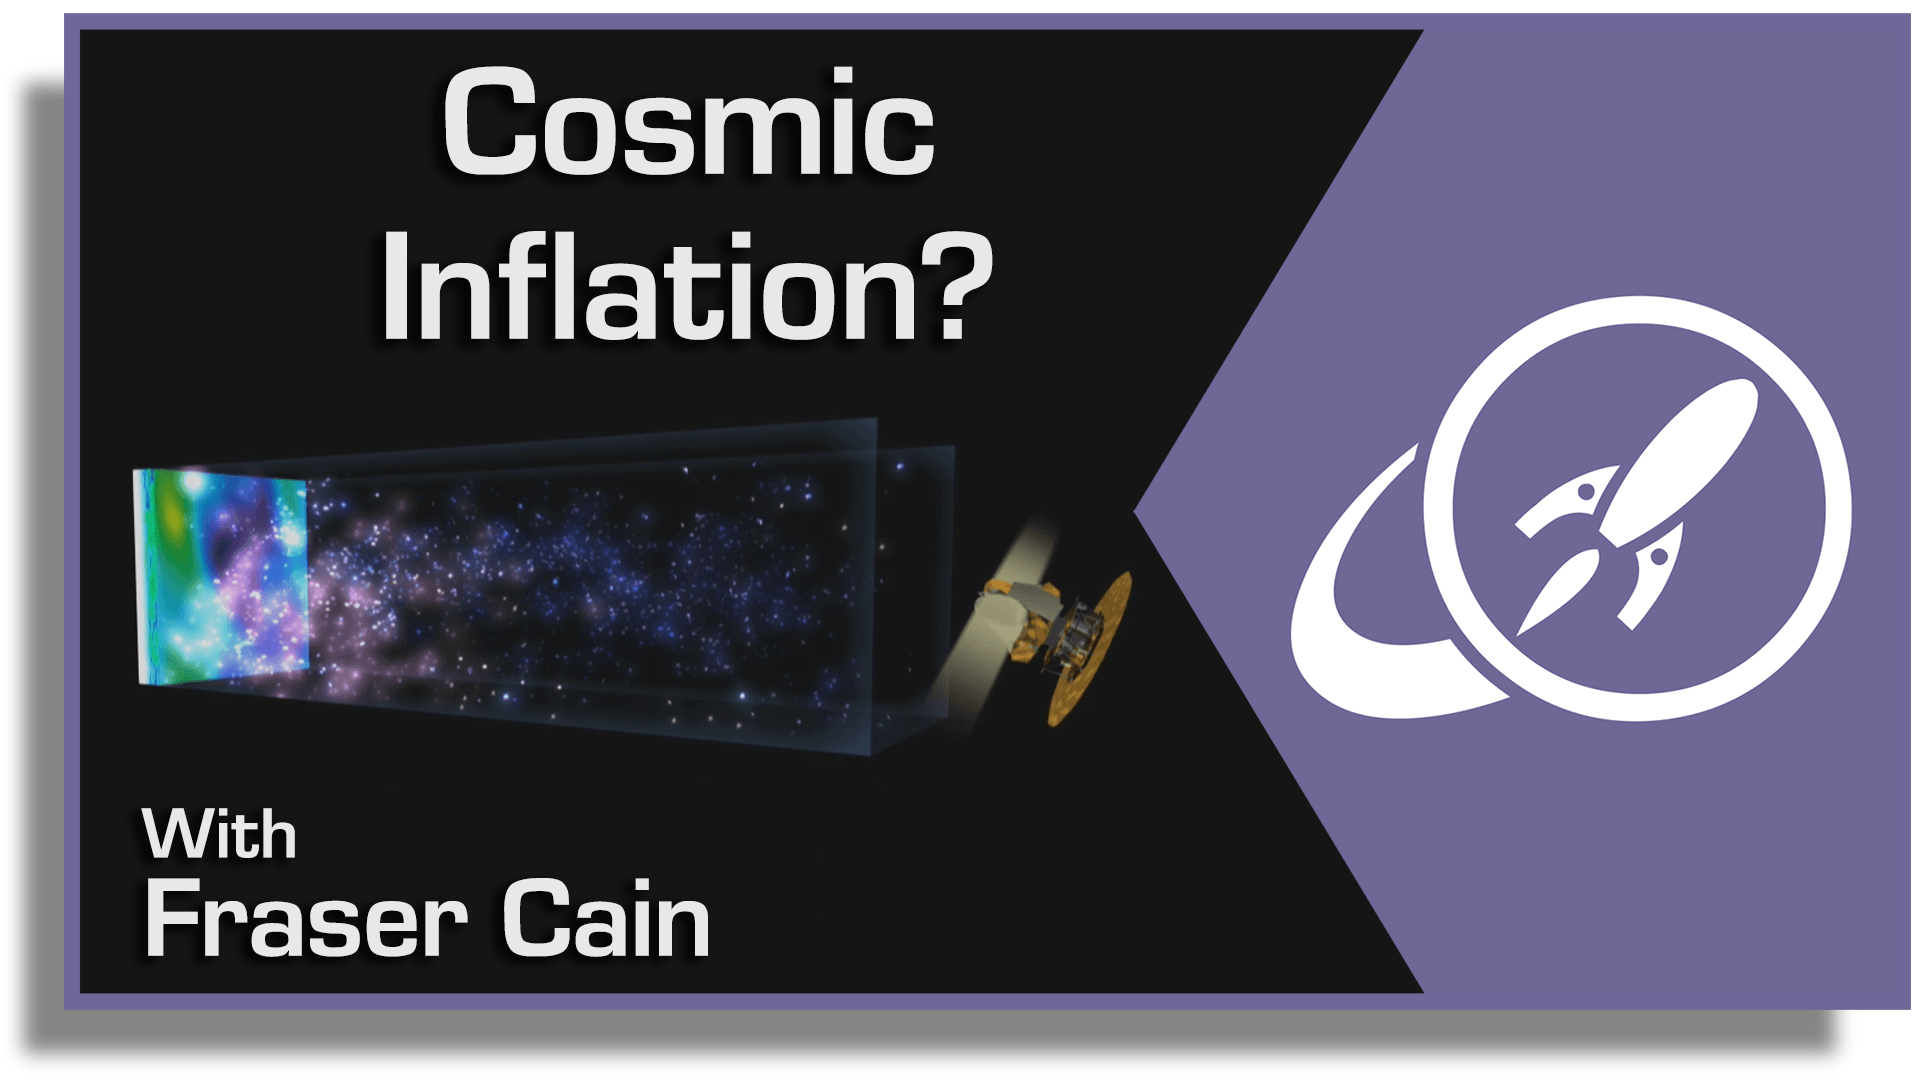 Cosmic Inflation?